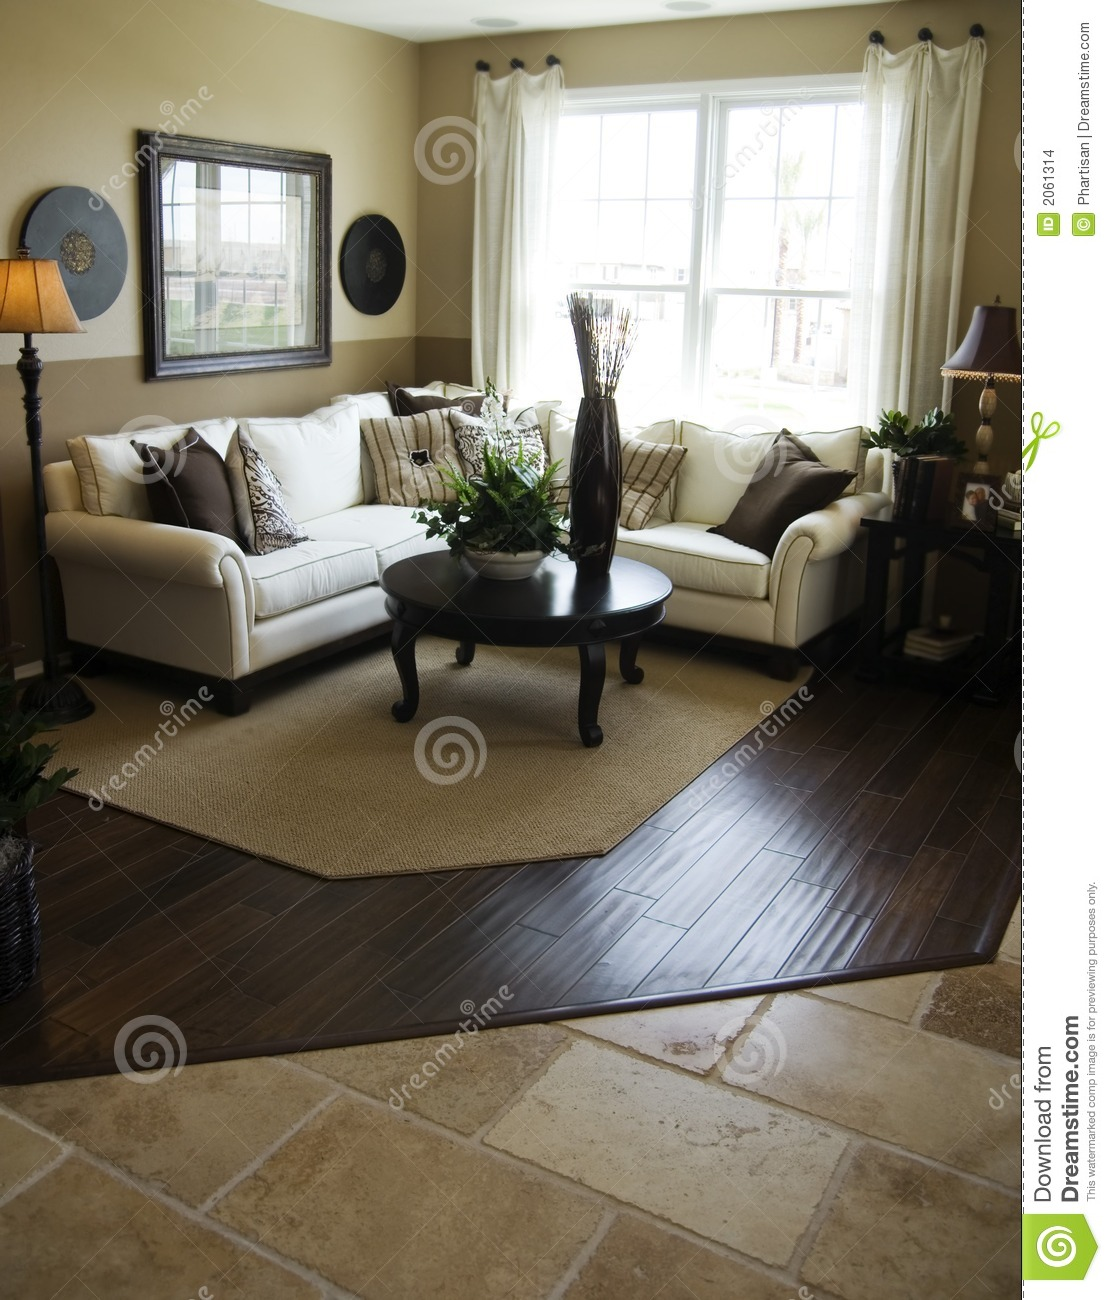 Design Hardwood Home Interior